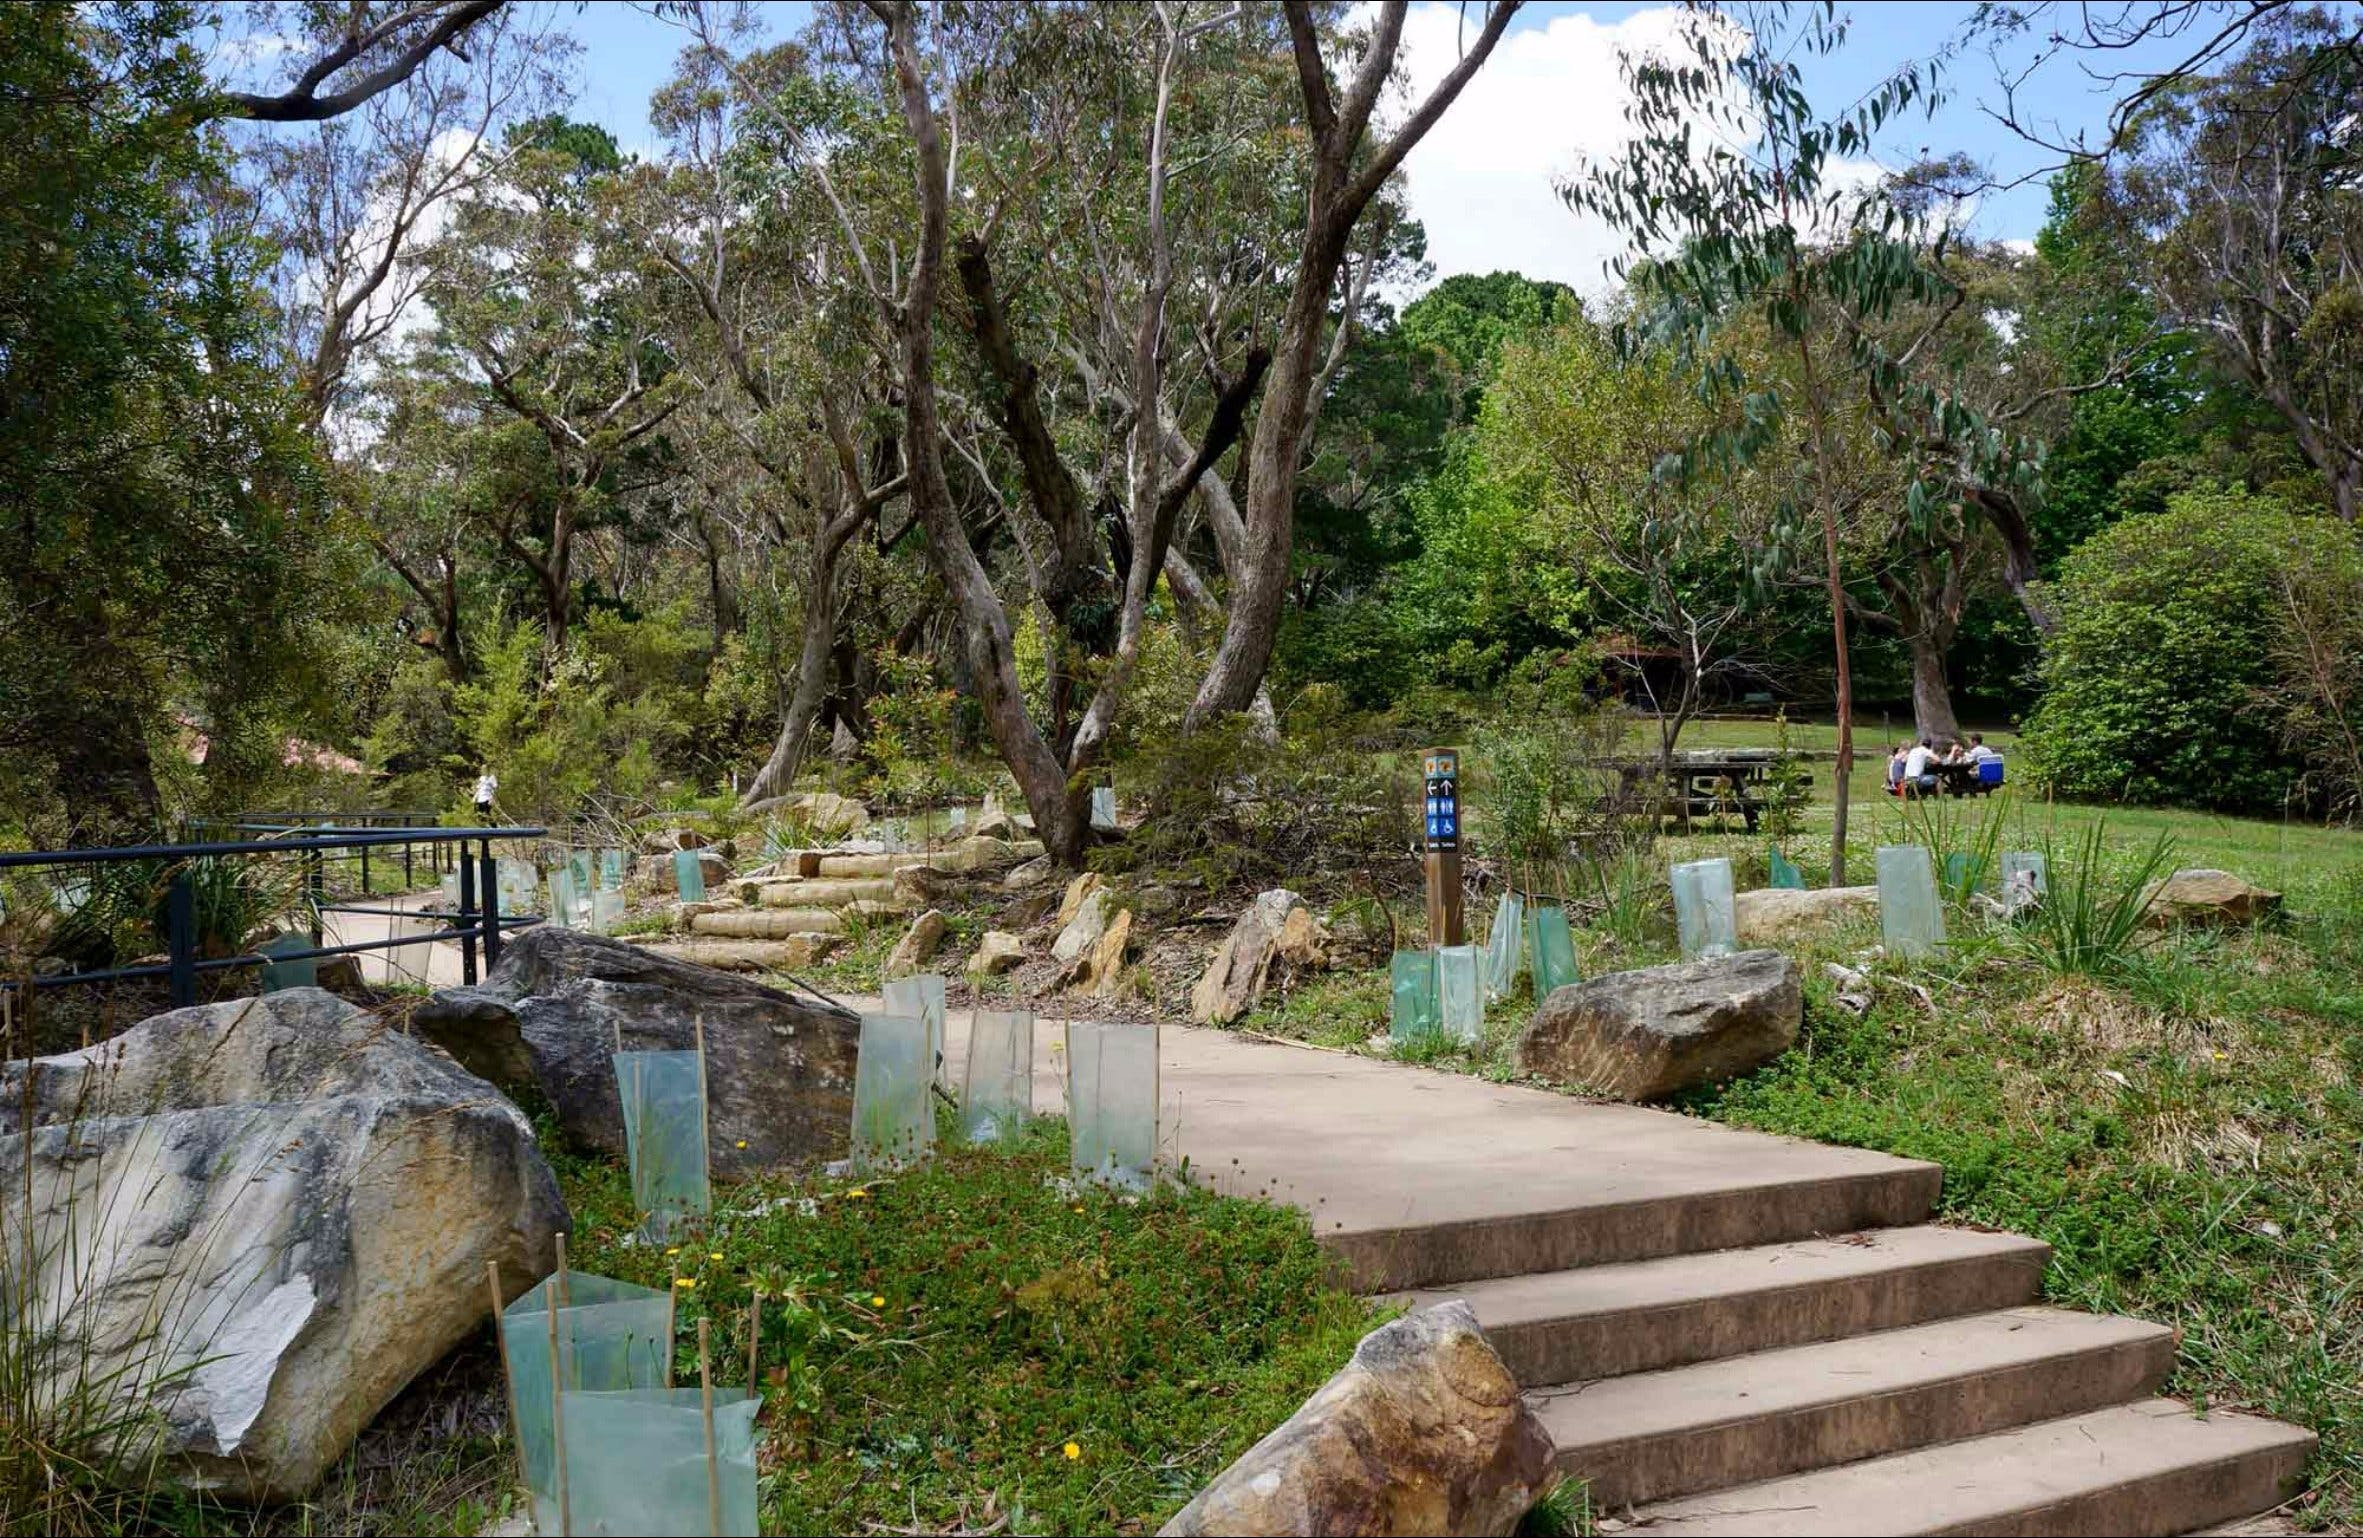 Wentworth Falls picnic area - Attractions